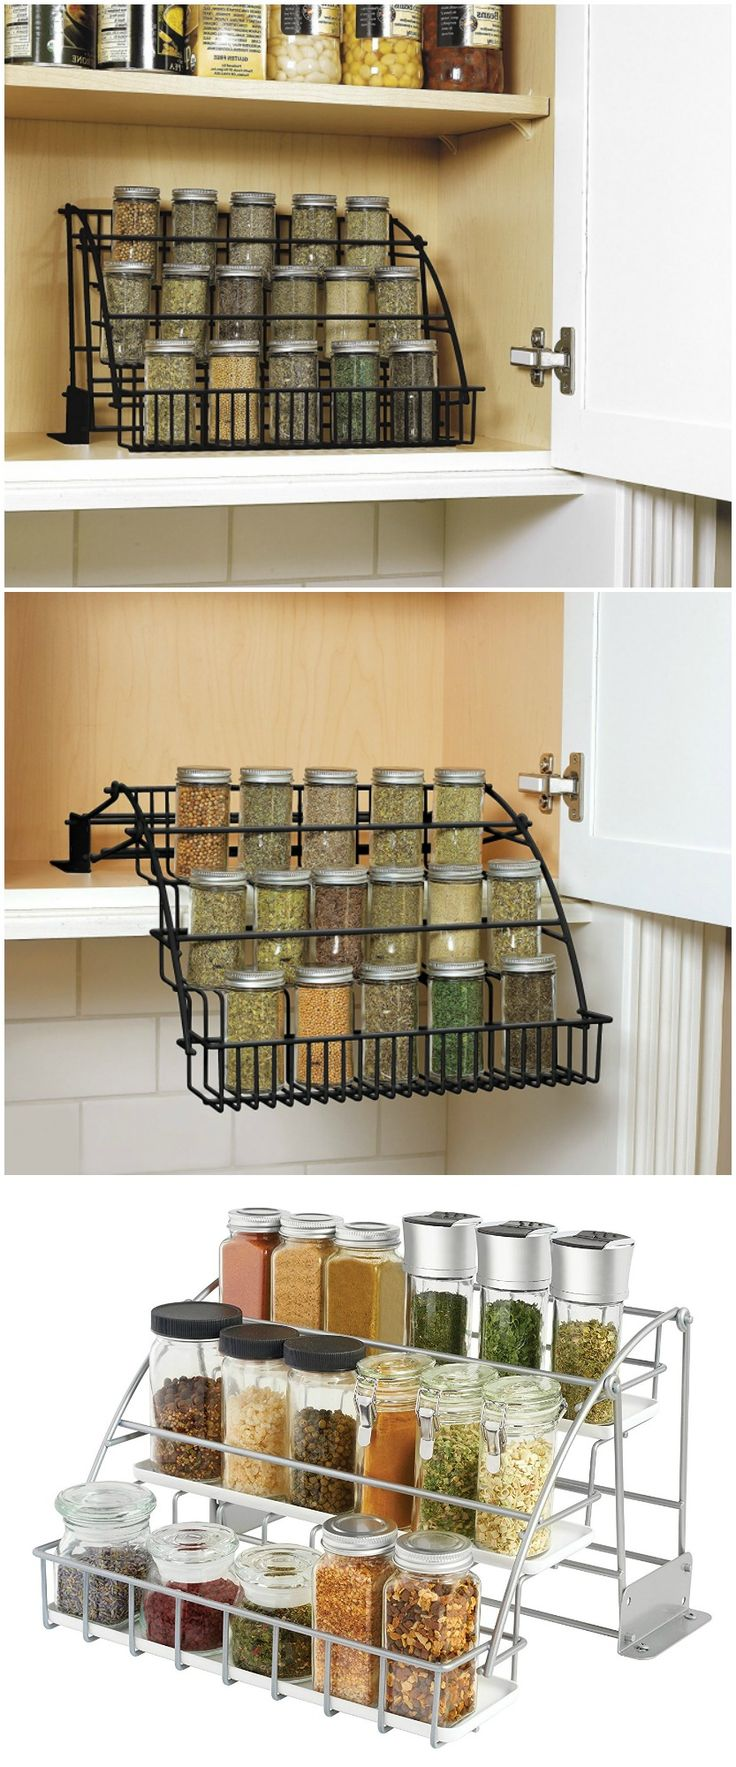 Spice Rack Ideas for Both Roomy or Cramped Kitchen and Other Rooms Tags: ikea spice rack spice rack ideas wall mounted spice rack magnetic spice rack spice rack ikea wooden spice rack spice rack with spices wall spice rack diy spice rack spice rack walmart pull out spice rack over the door spice rack hanging spice rack spice rack organizer amazon spice rack kamenstein spice rack rotating spice rack door spice rack pantry door spice rack lazy susan spice rack pull down spice rack